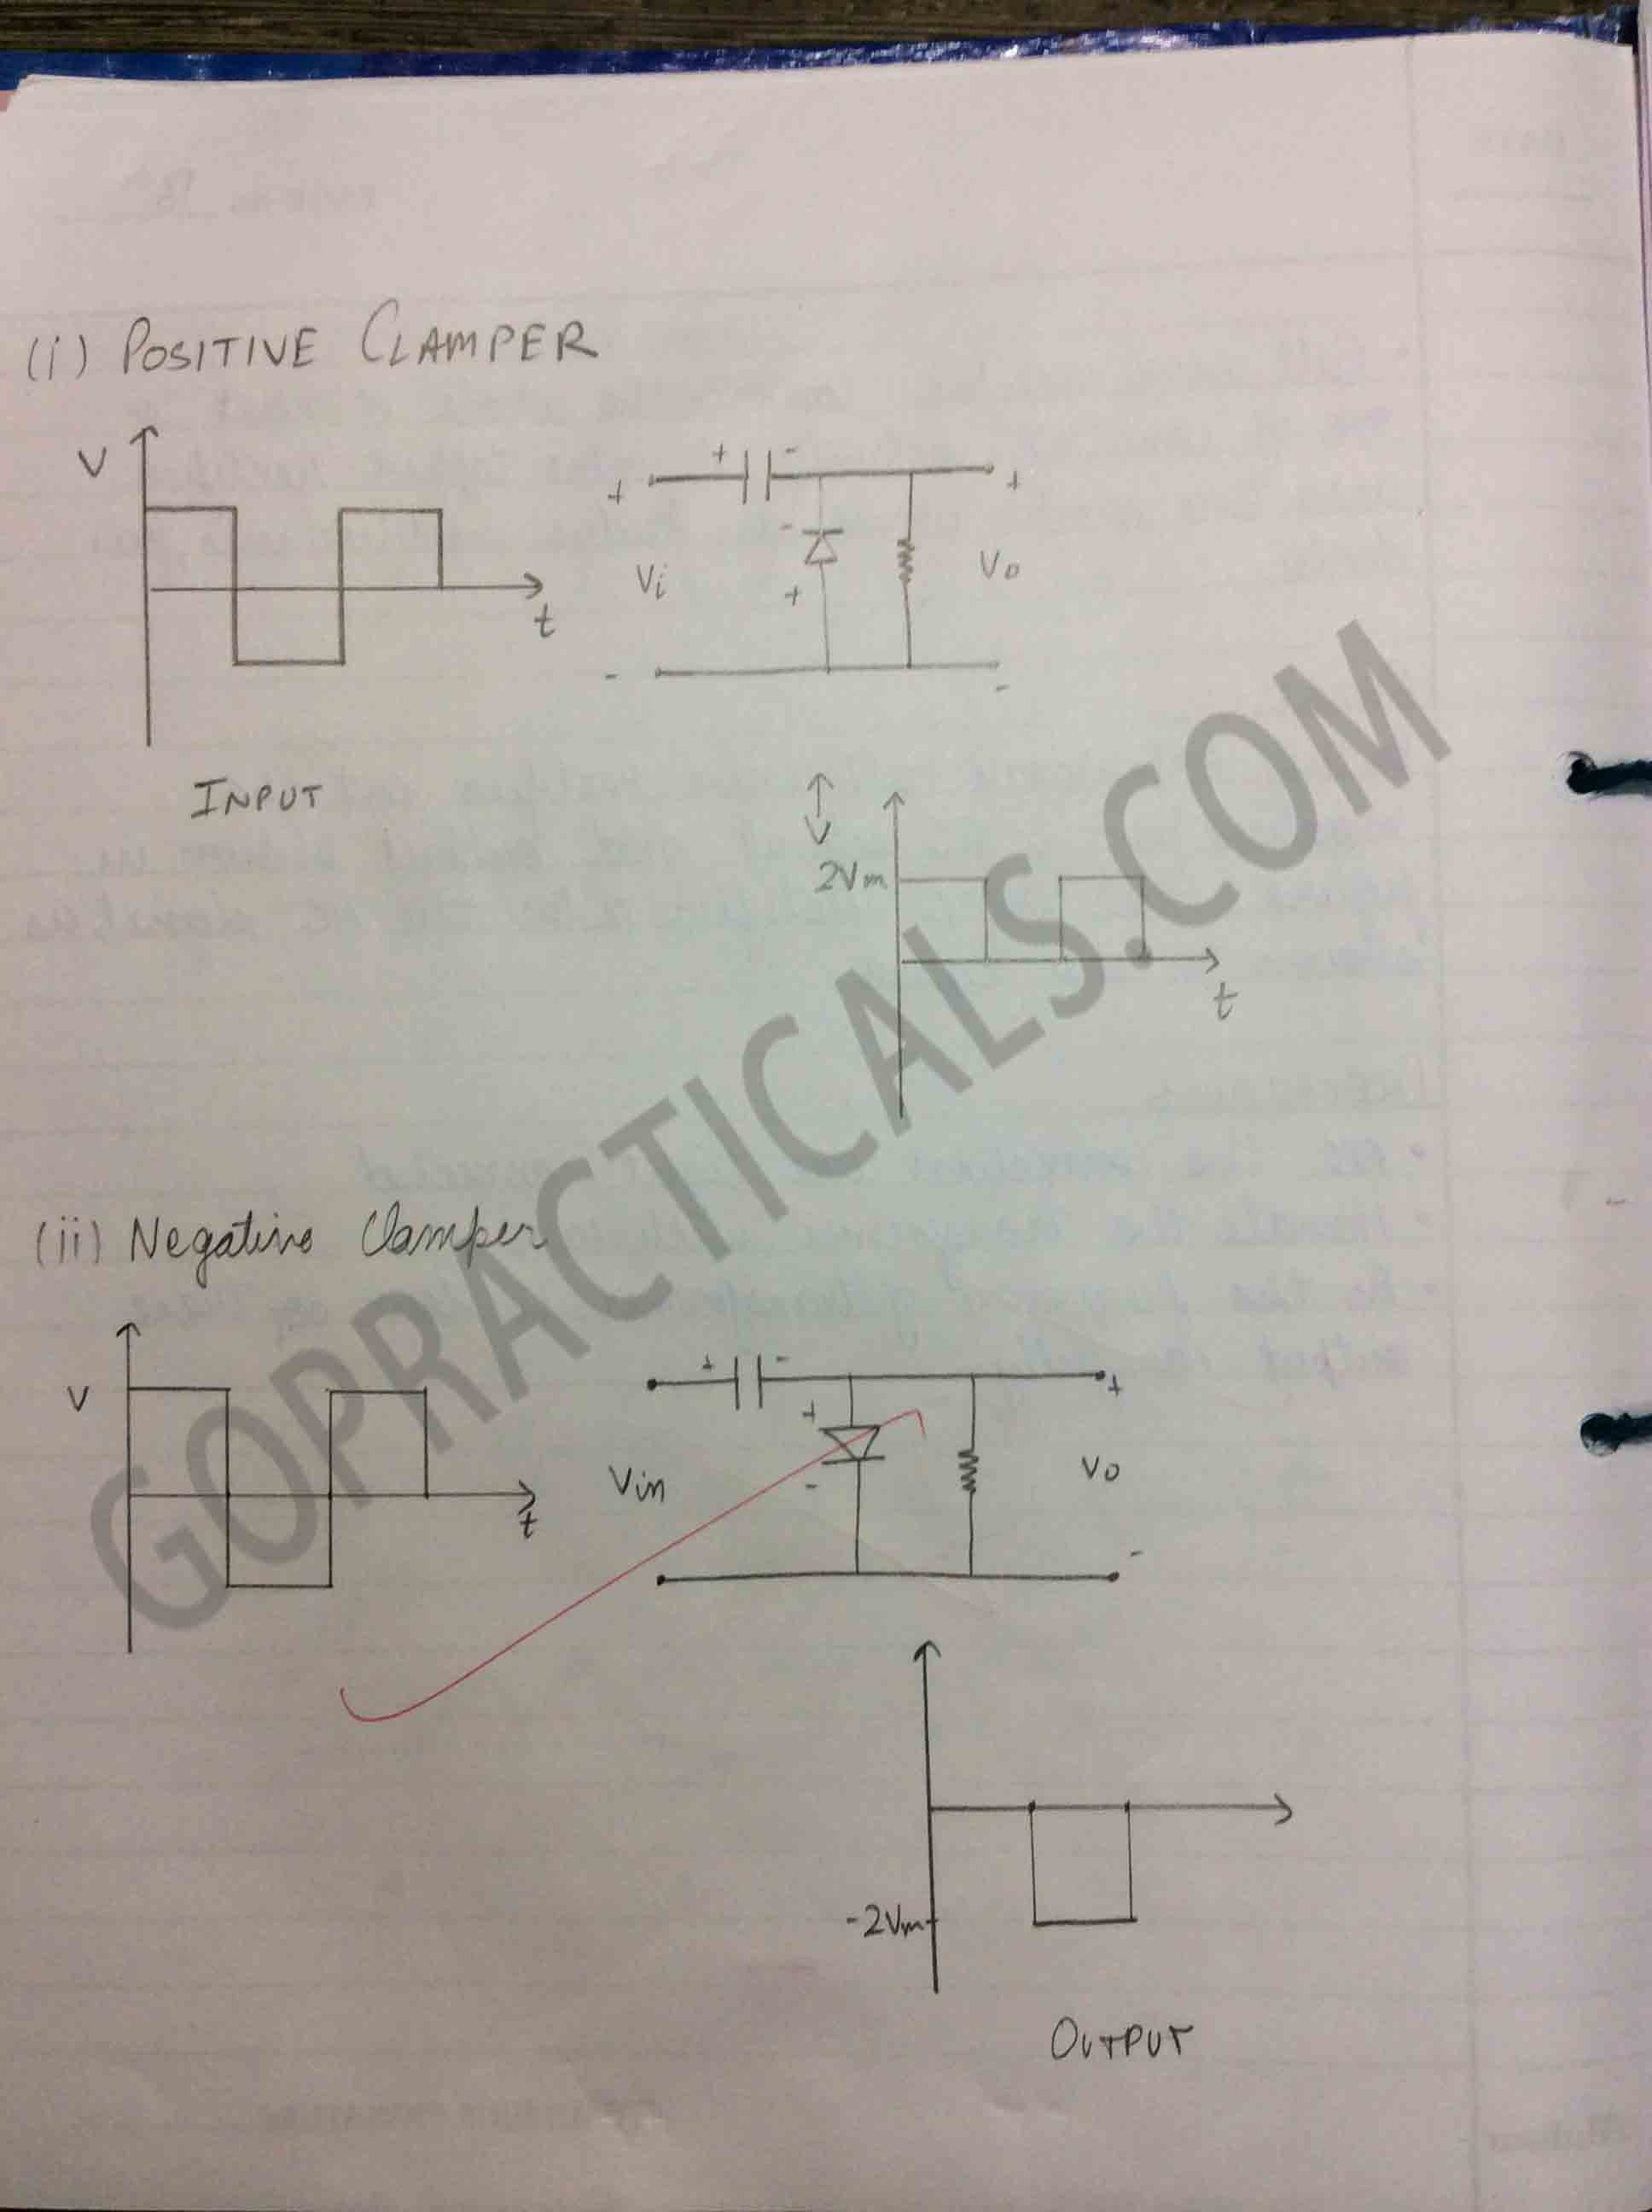 Diode Application in Clamper Circuit-2